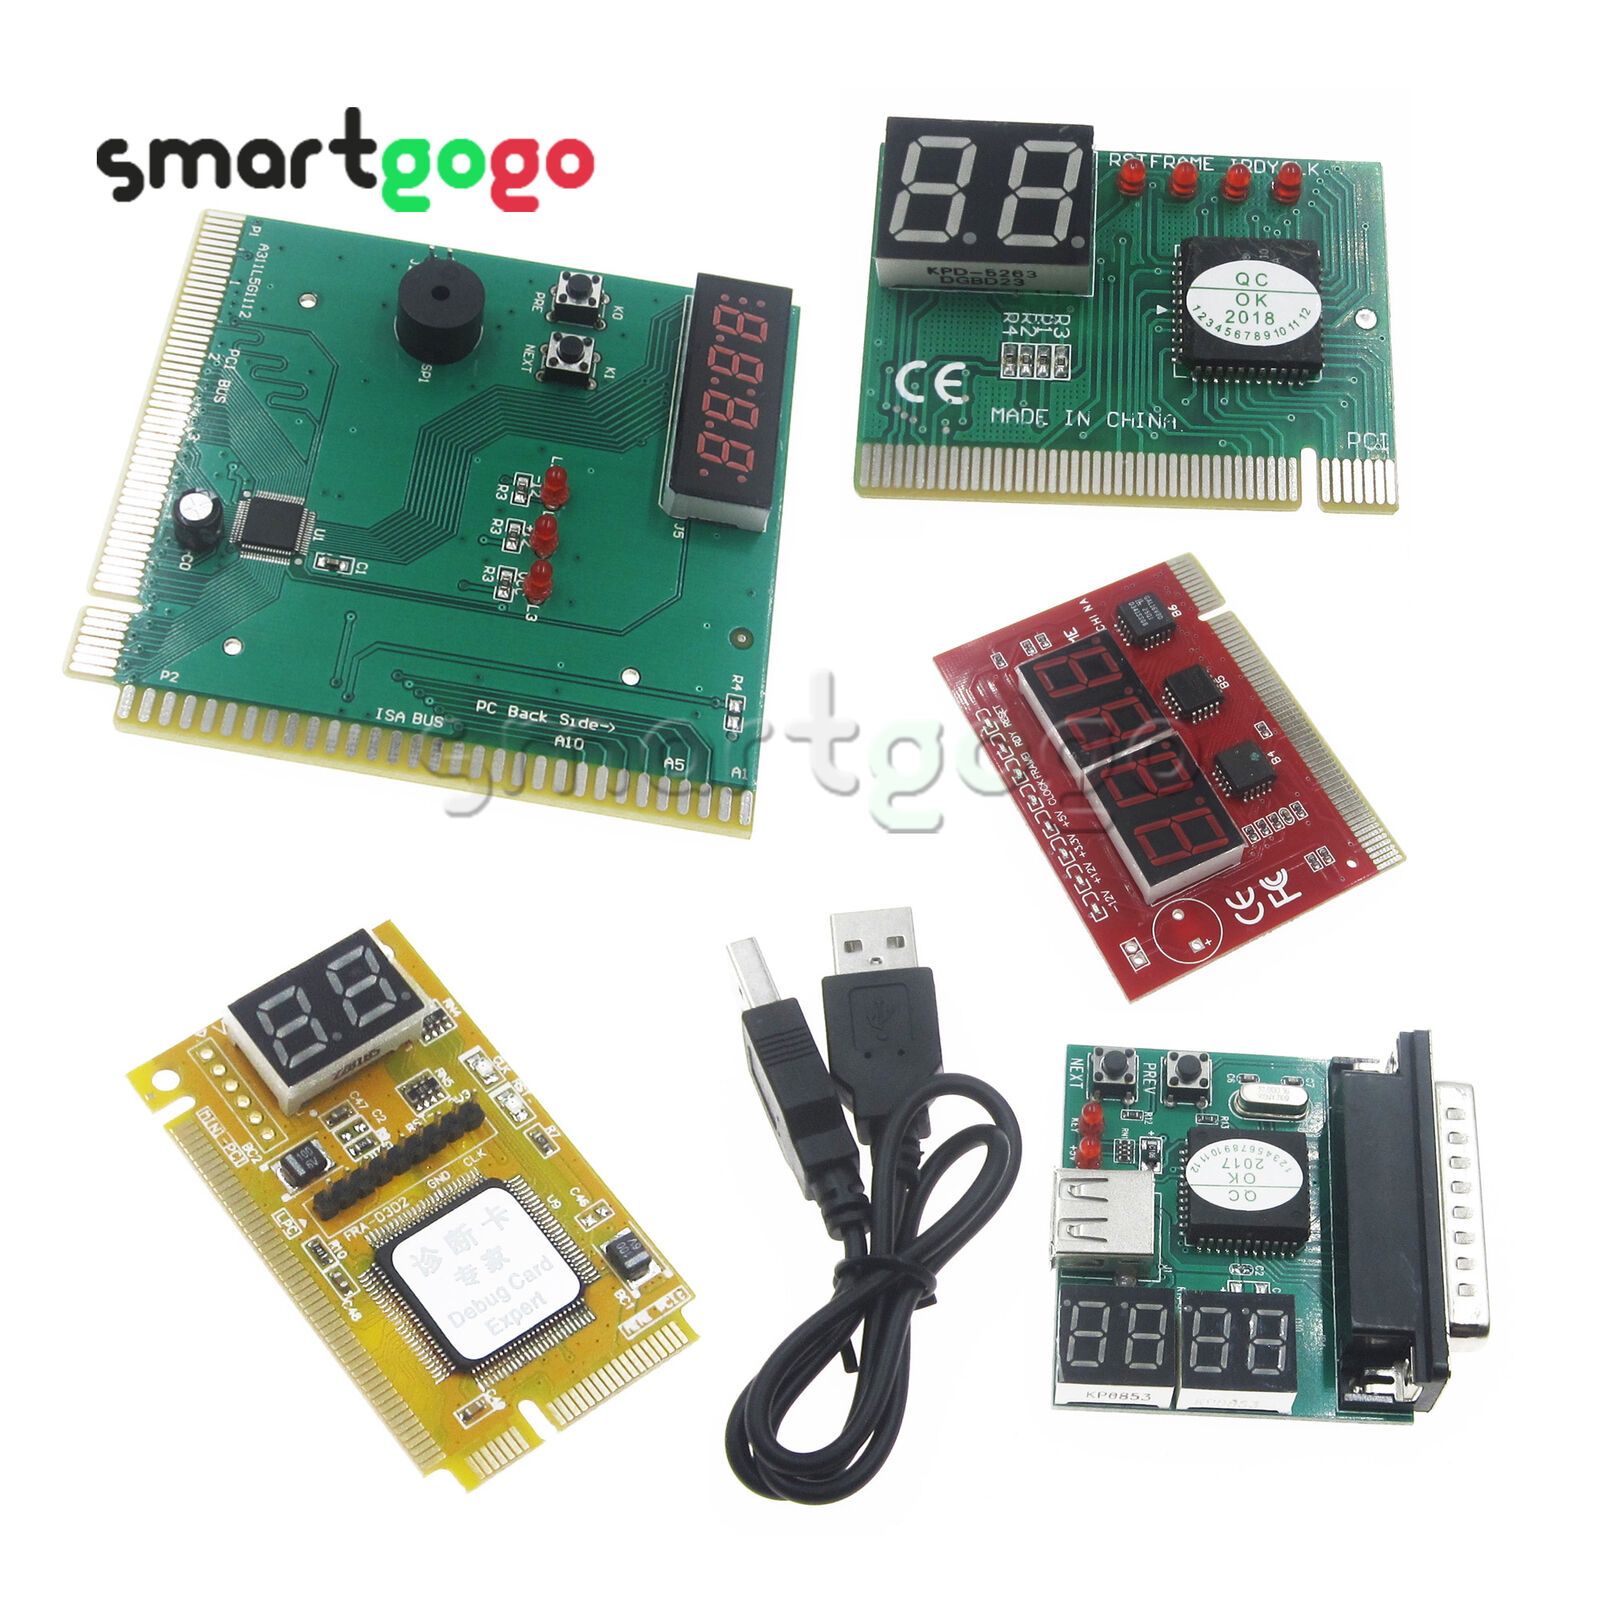 2 4 Digit 3 In1 Pci E Pc Analysis Diagnostic Usb Card Post Top 10 Pcs 50mmx70mm Single Side Copper Cover Pcb Circuit Board Stripboard 1 Of 6free Shipping